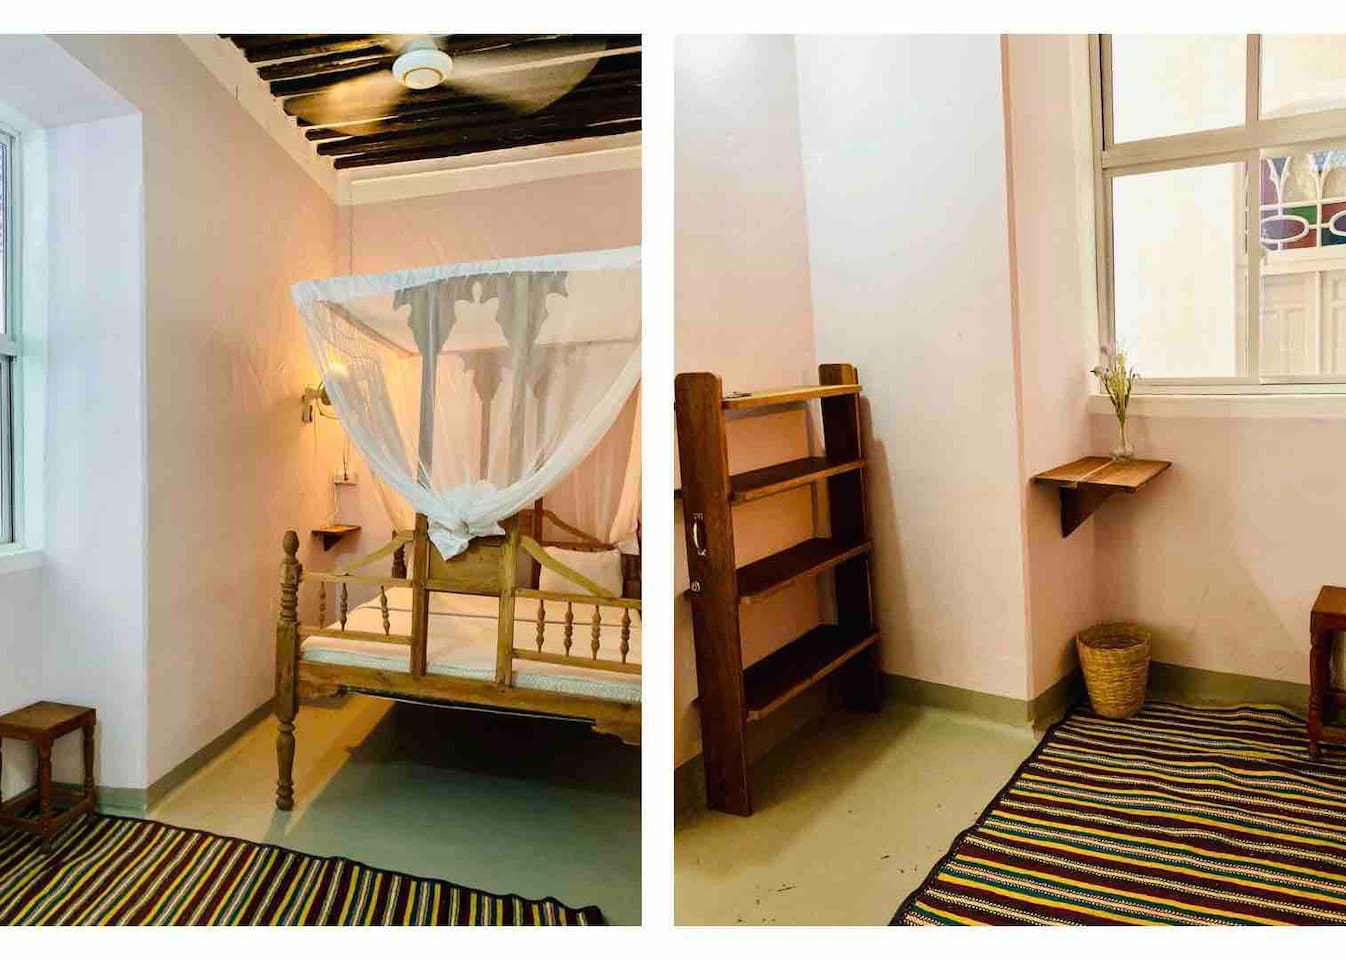 Zanzibar-style queen size bed (150x200cm), mosquito net, fan, table, chair, shelf, wooden hooks and charming wood ceiling.